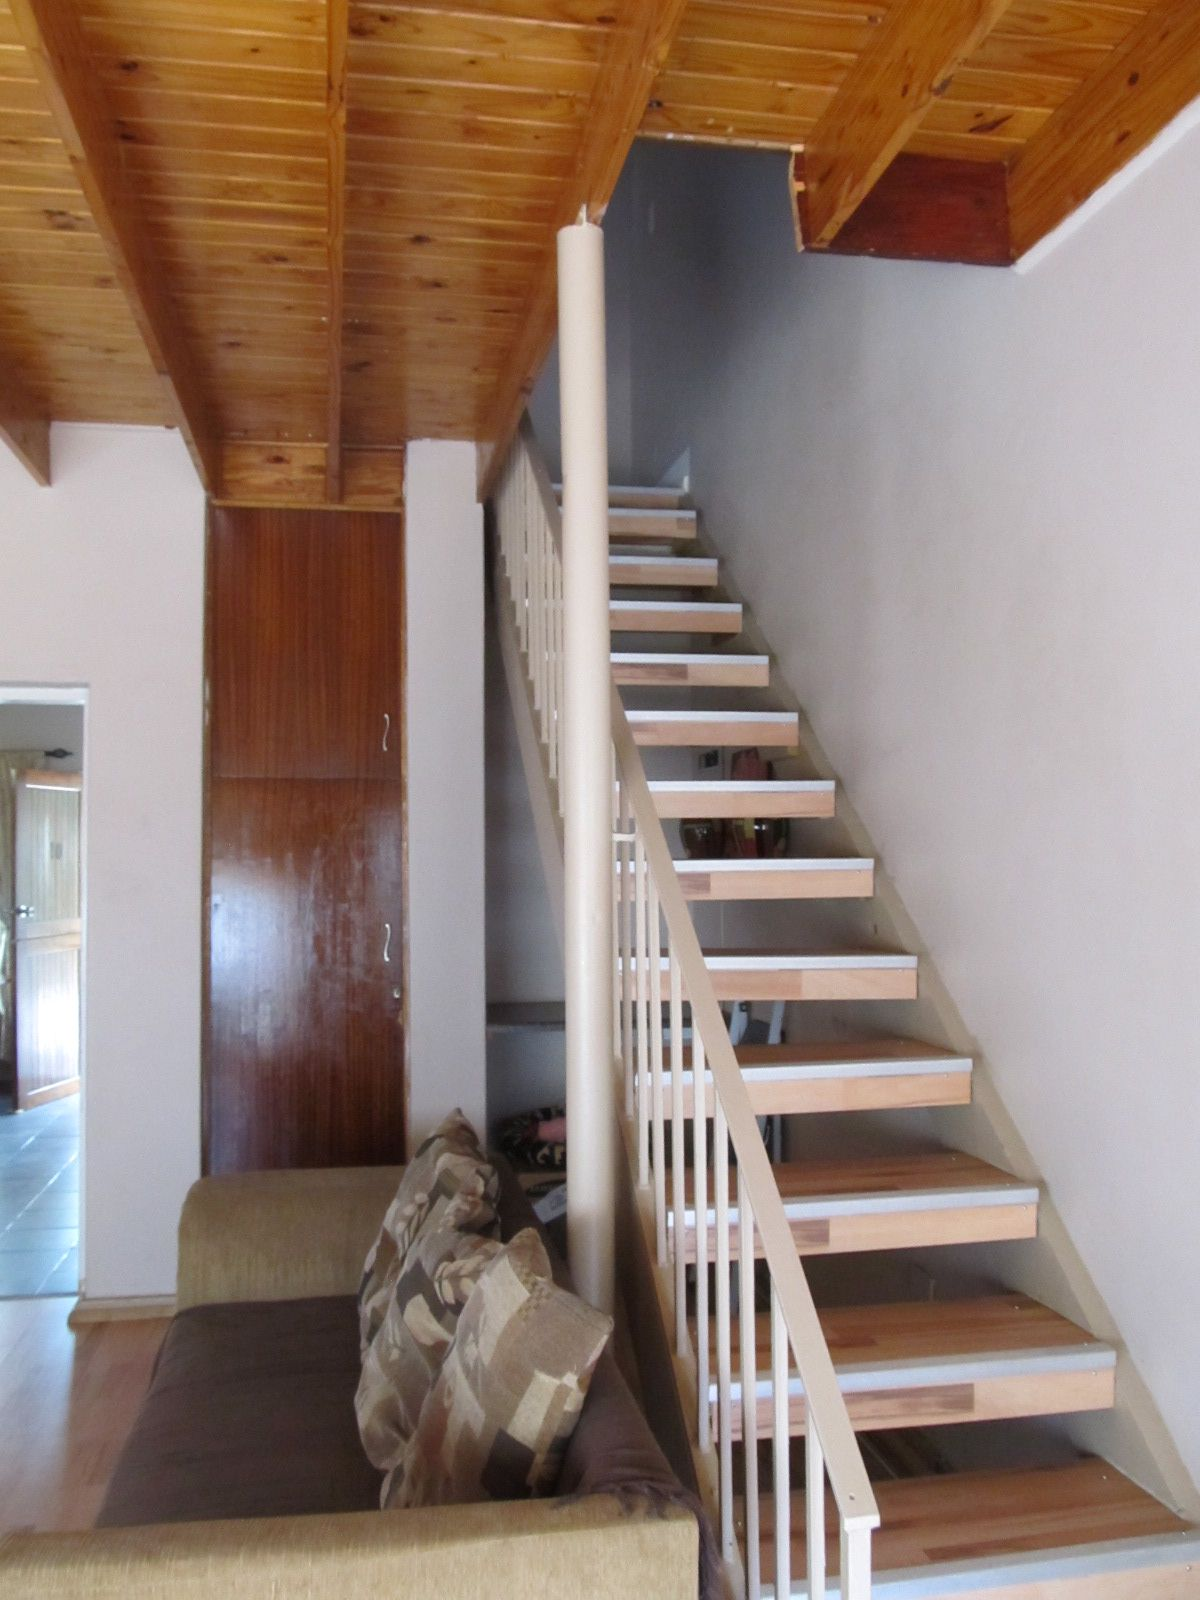 House in Central - stairs